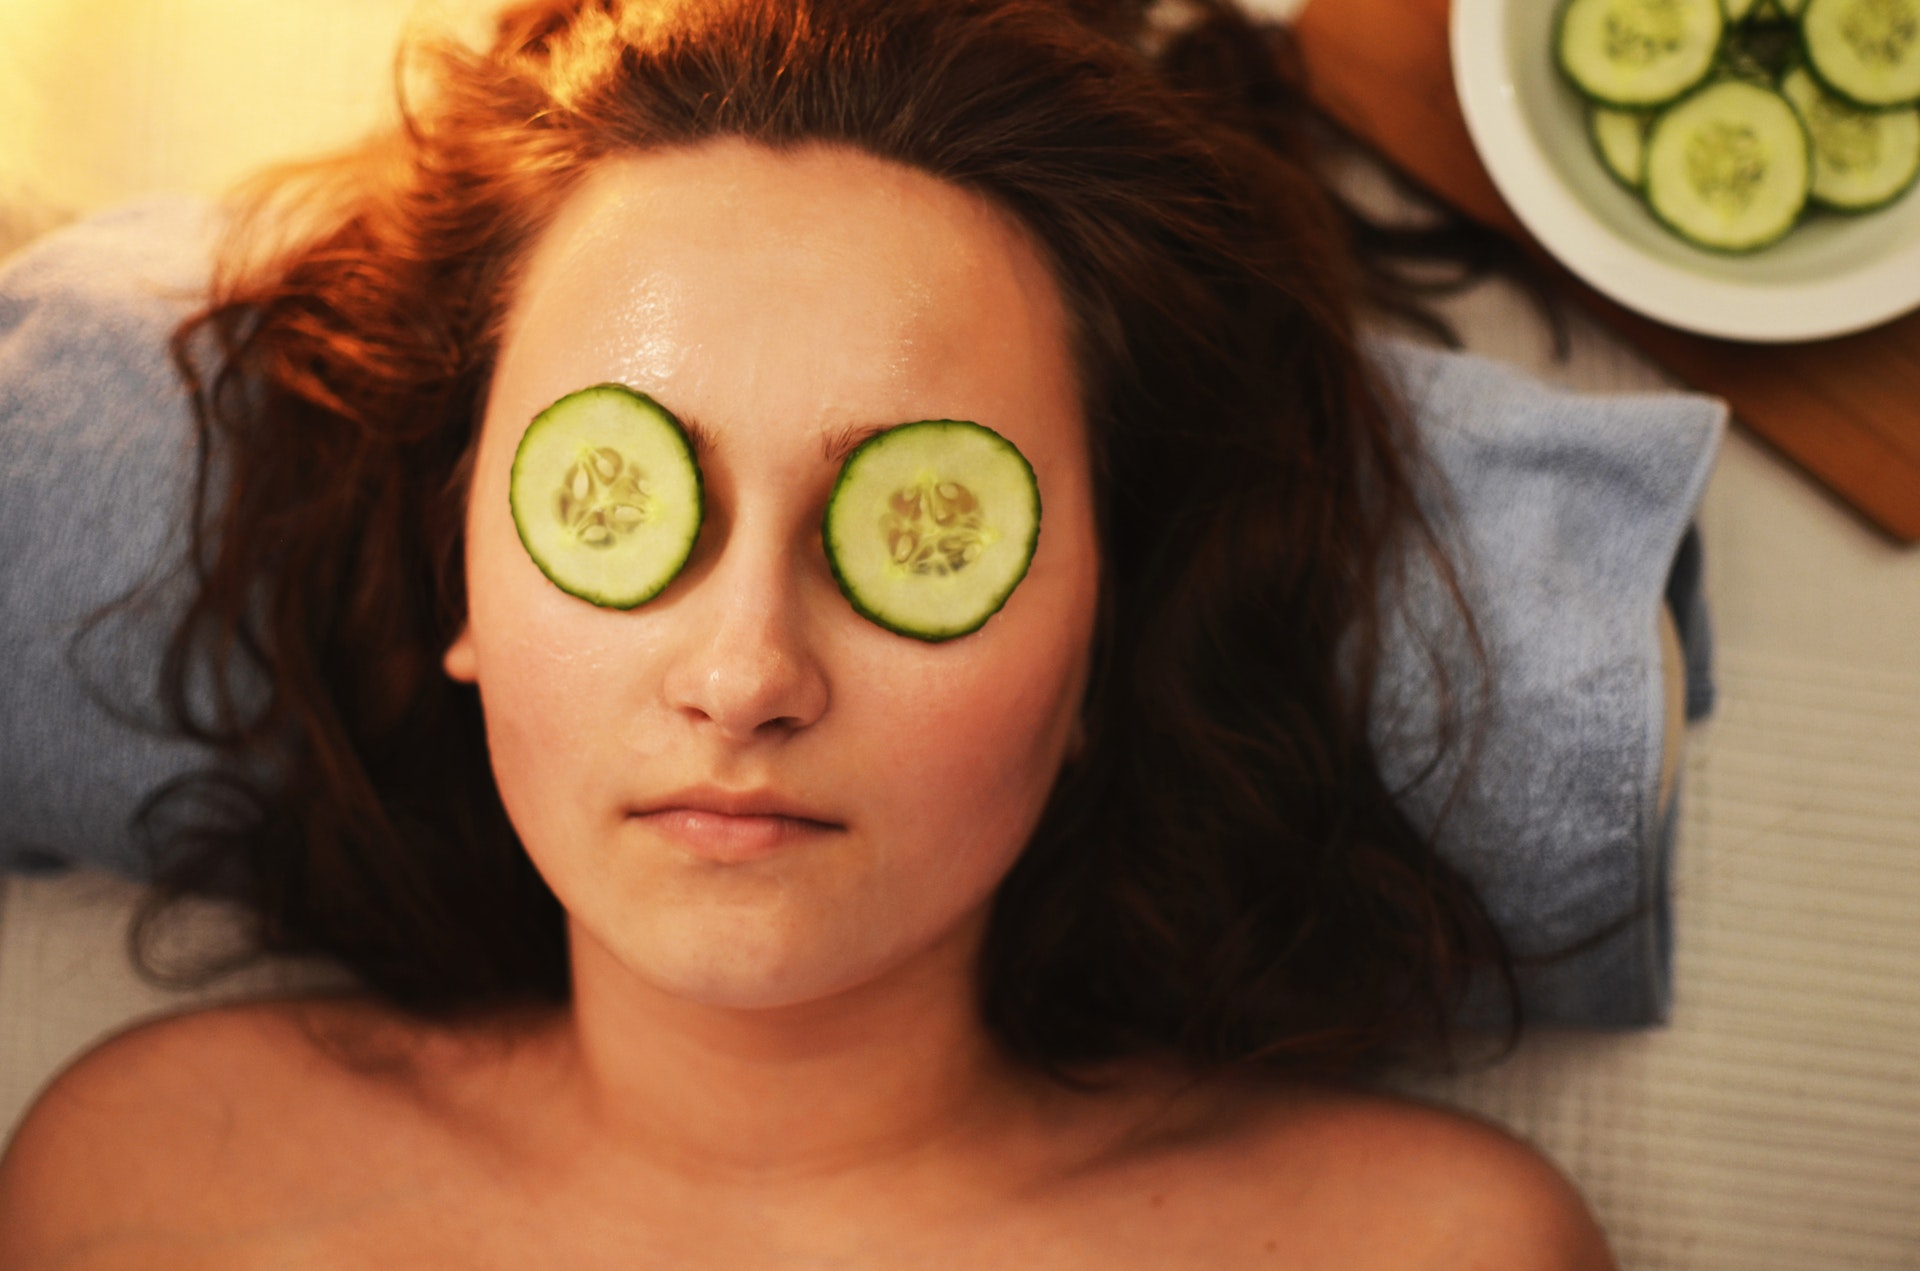 GET RID OF ACNE WITH HOMEMADE FACE MASKS